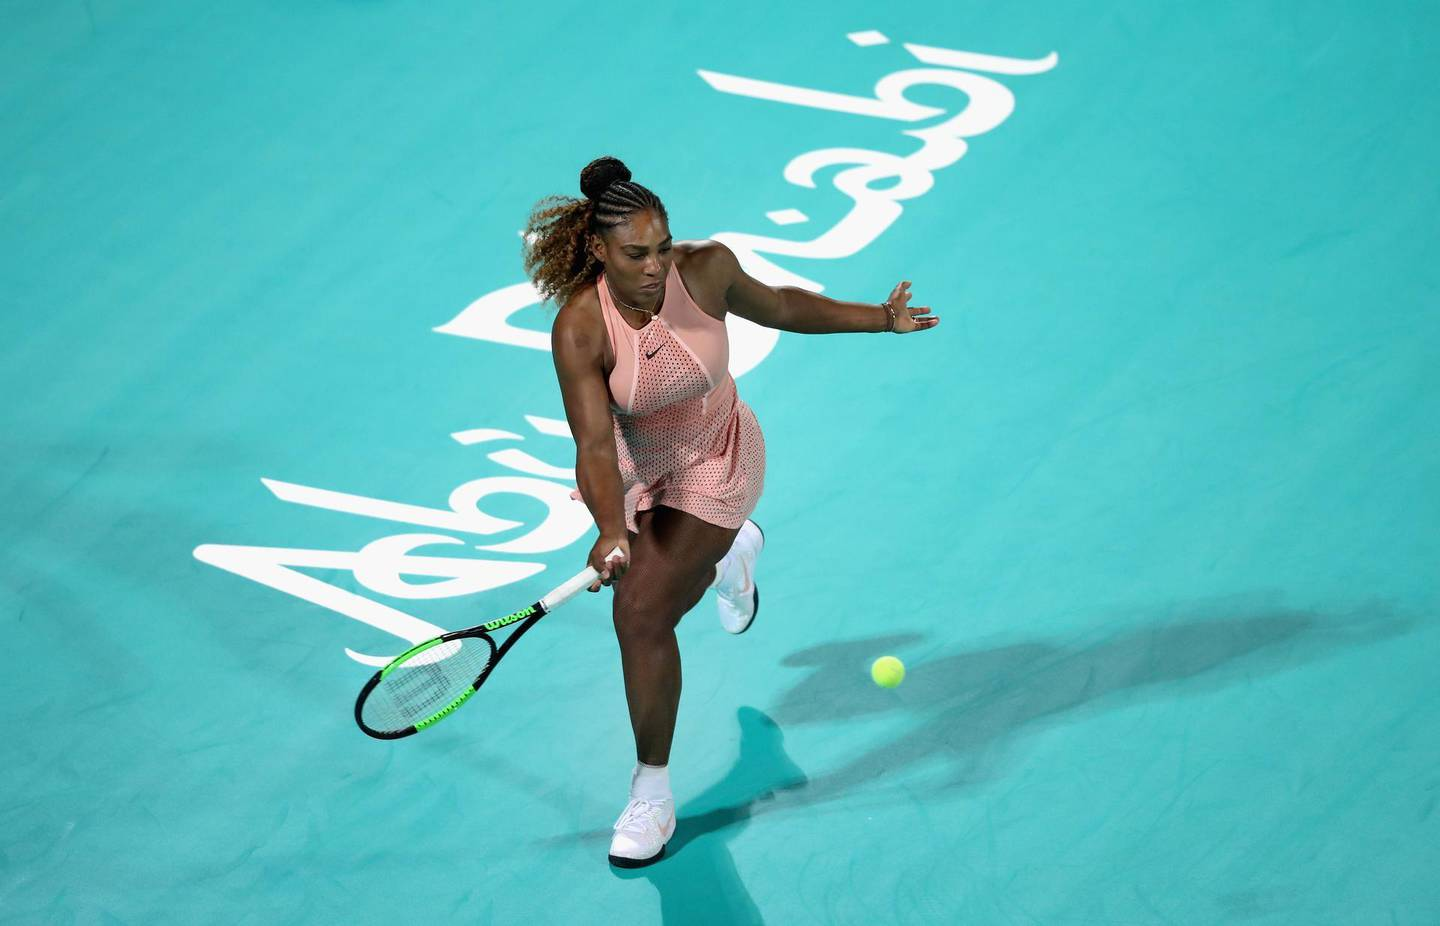 ABU DHABI, UNITED ARAB EMIRATES - DECEMBER 27:  Serena Williams of United States in action against Venus Williams of United States during her women's singles match on day one of the Mubadala World Tennis Championship at International Tennis Centre Zayed Sports City on December 27, 2018 in Abu Dhabi, United Arab Emirates.  (Photo by Francois Nel/Getty Images)